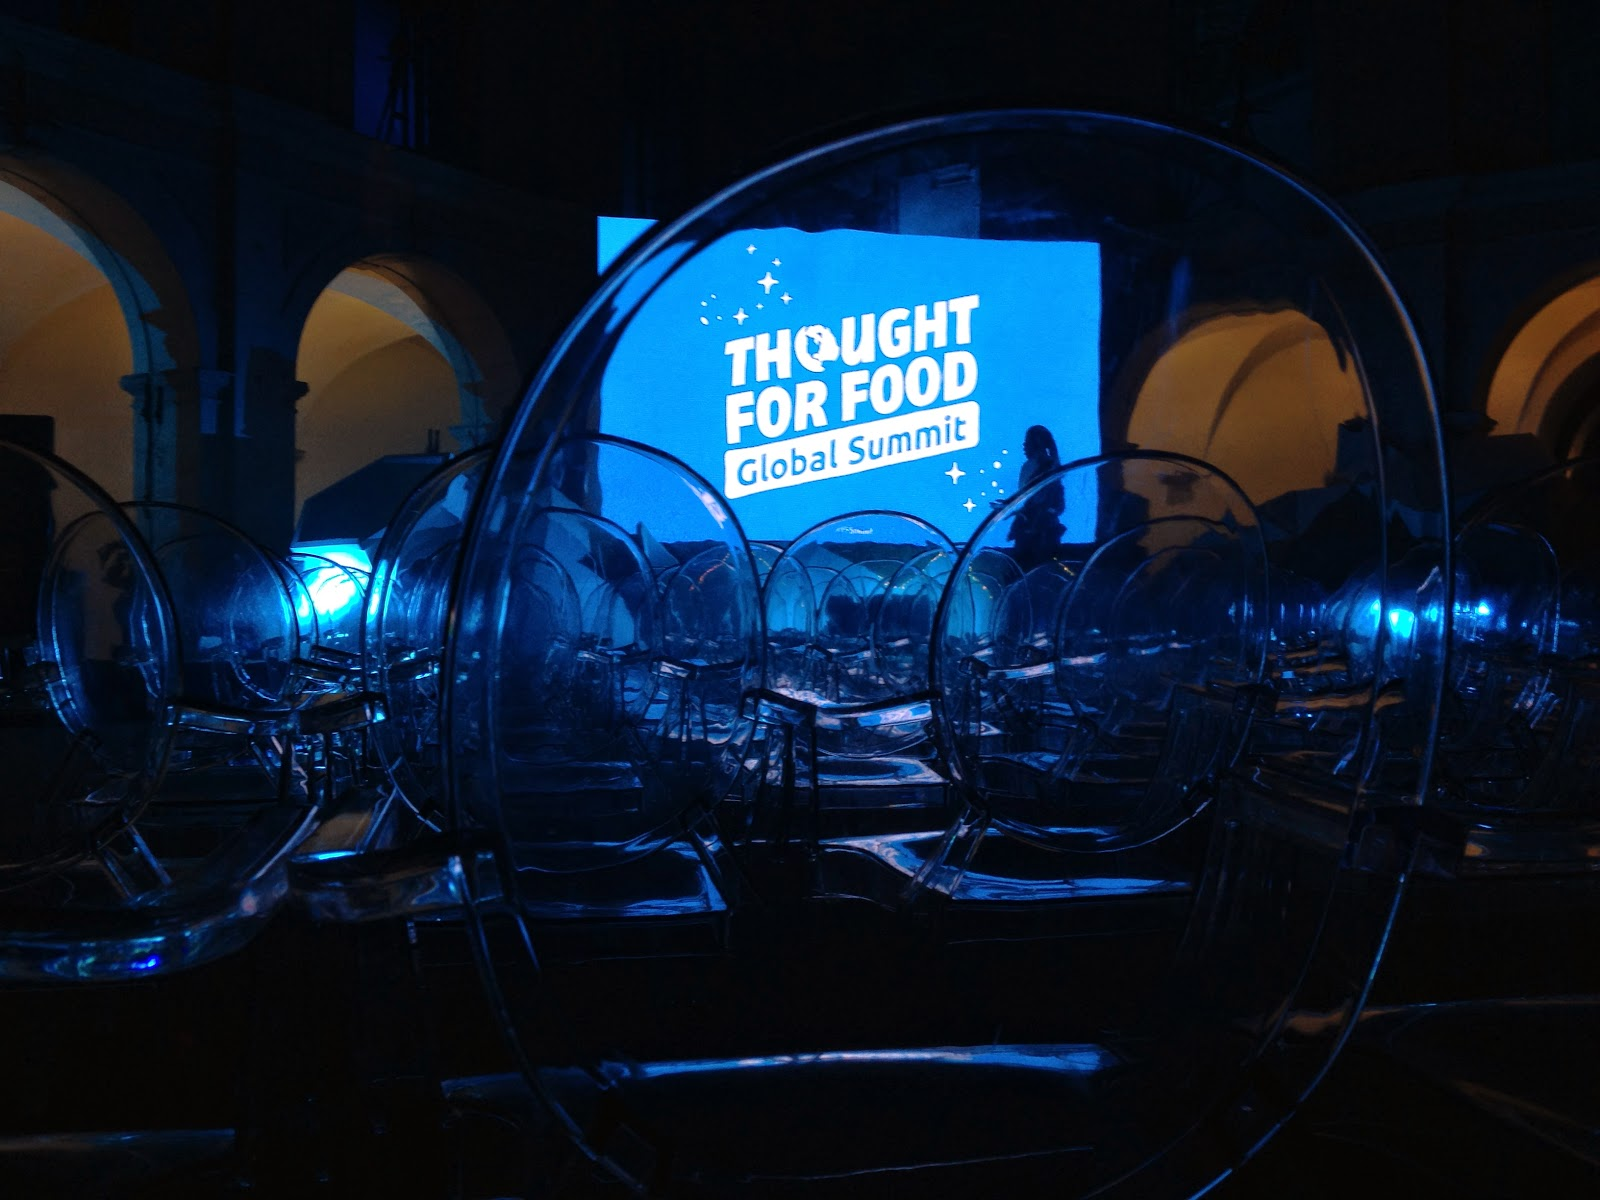 Thought For Food Global Summit 2015